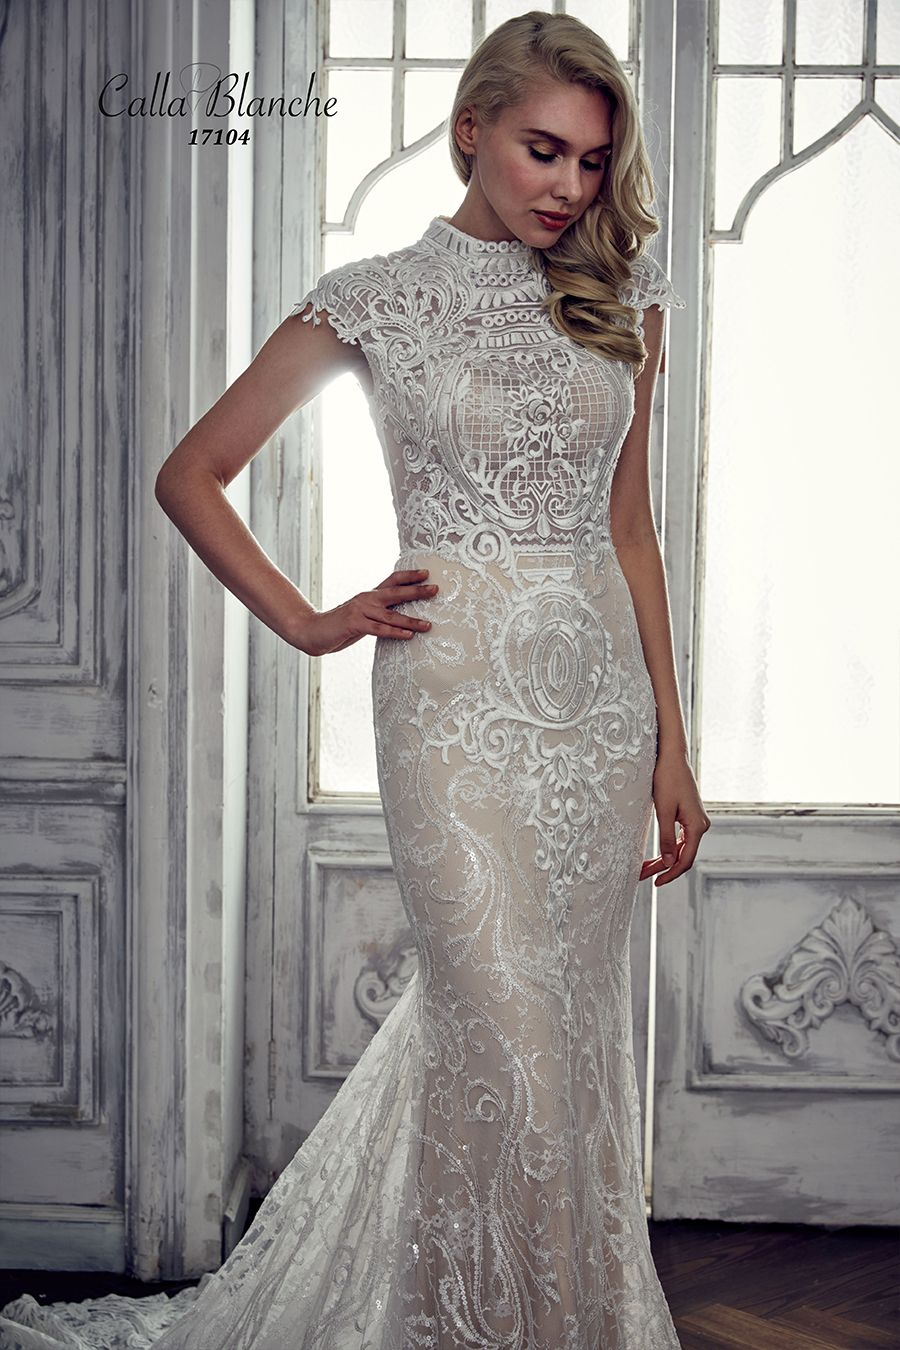 veronica wedding dress style 17104 size 10 is available at debra s